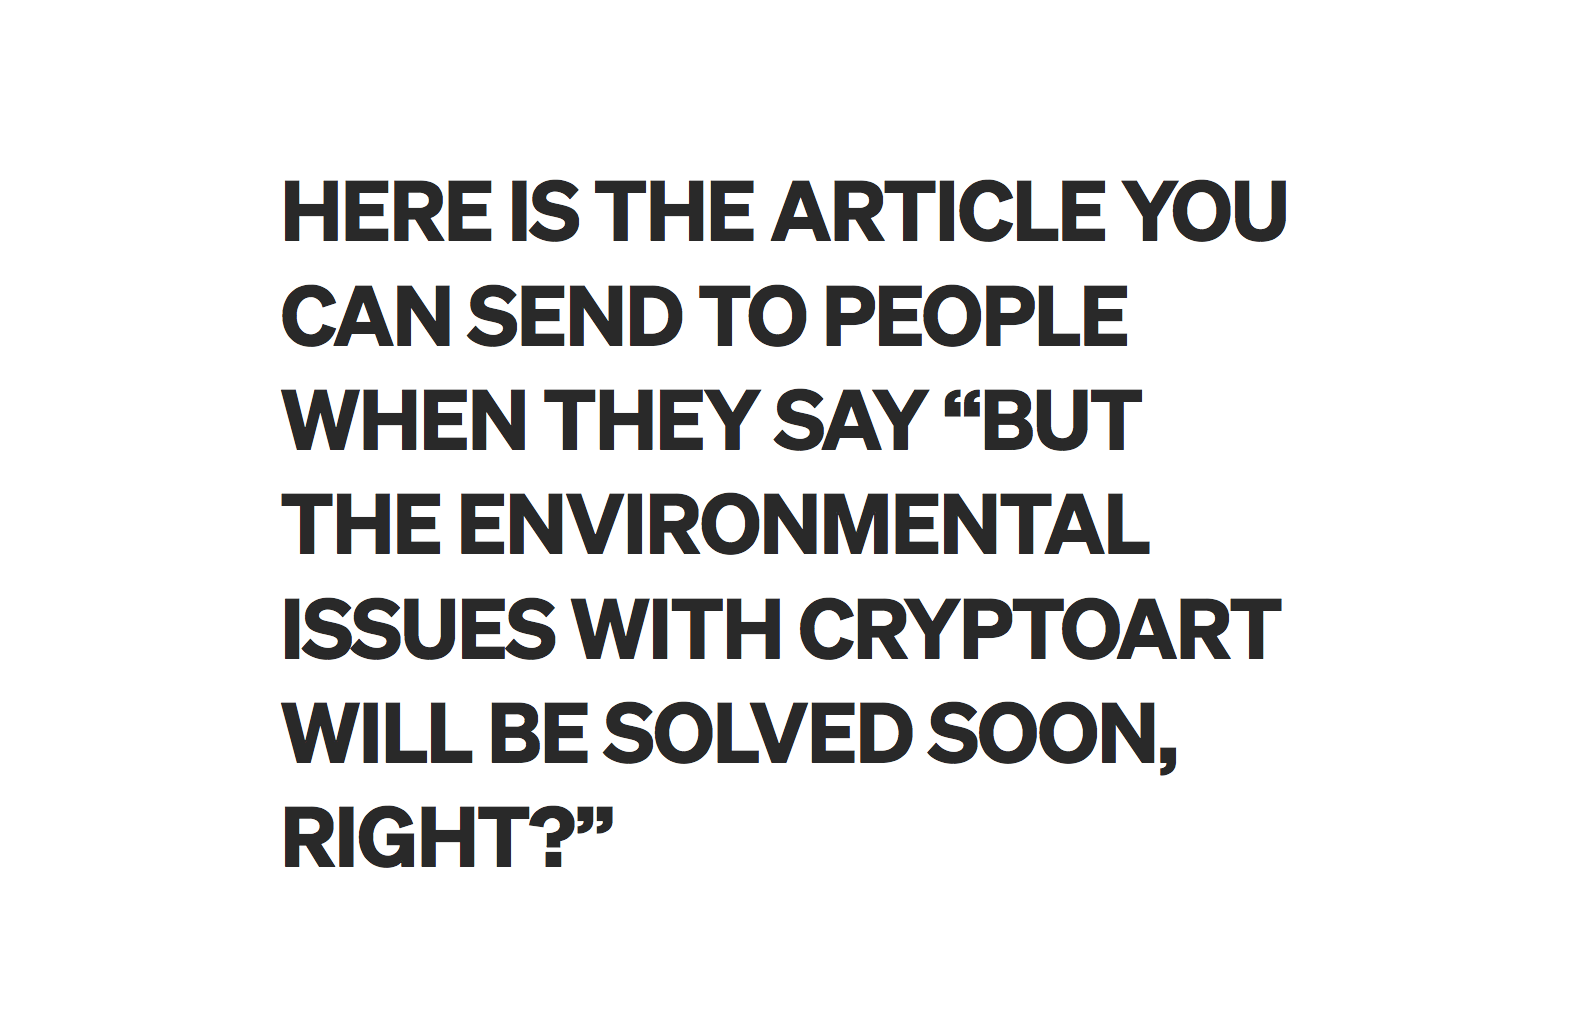 "HERE IS THE ARTICLE YOU CAN SEND TO PEOPLE WHEN THEY SAY ""BUT THE ENVIRONMENTAL ISSUES WITH CRYPTOART WILL BE SOLVED SOON, RIGHT?"""